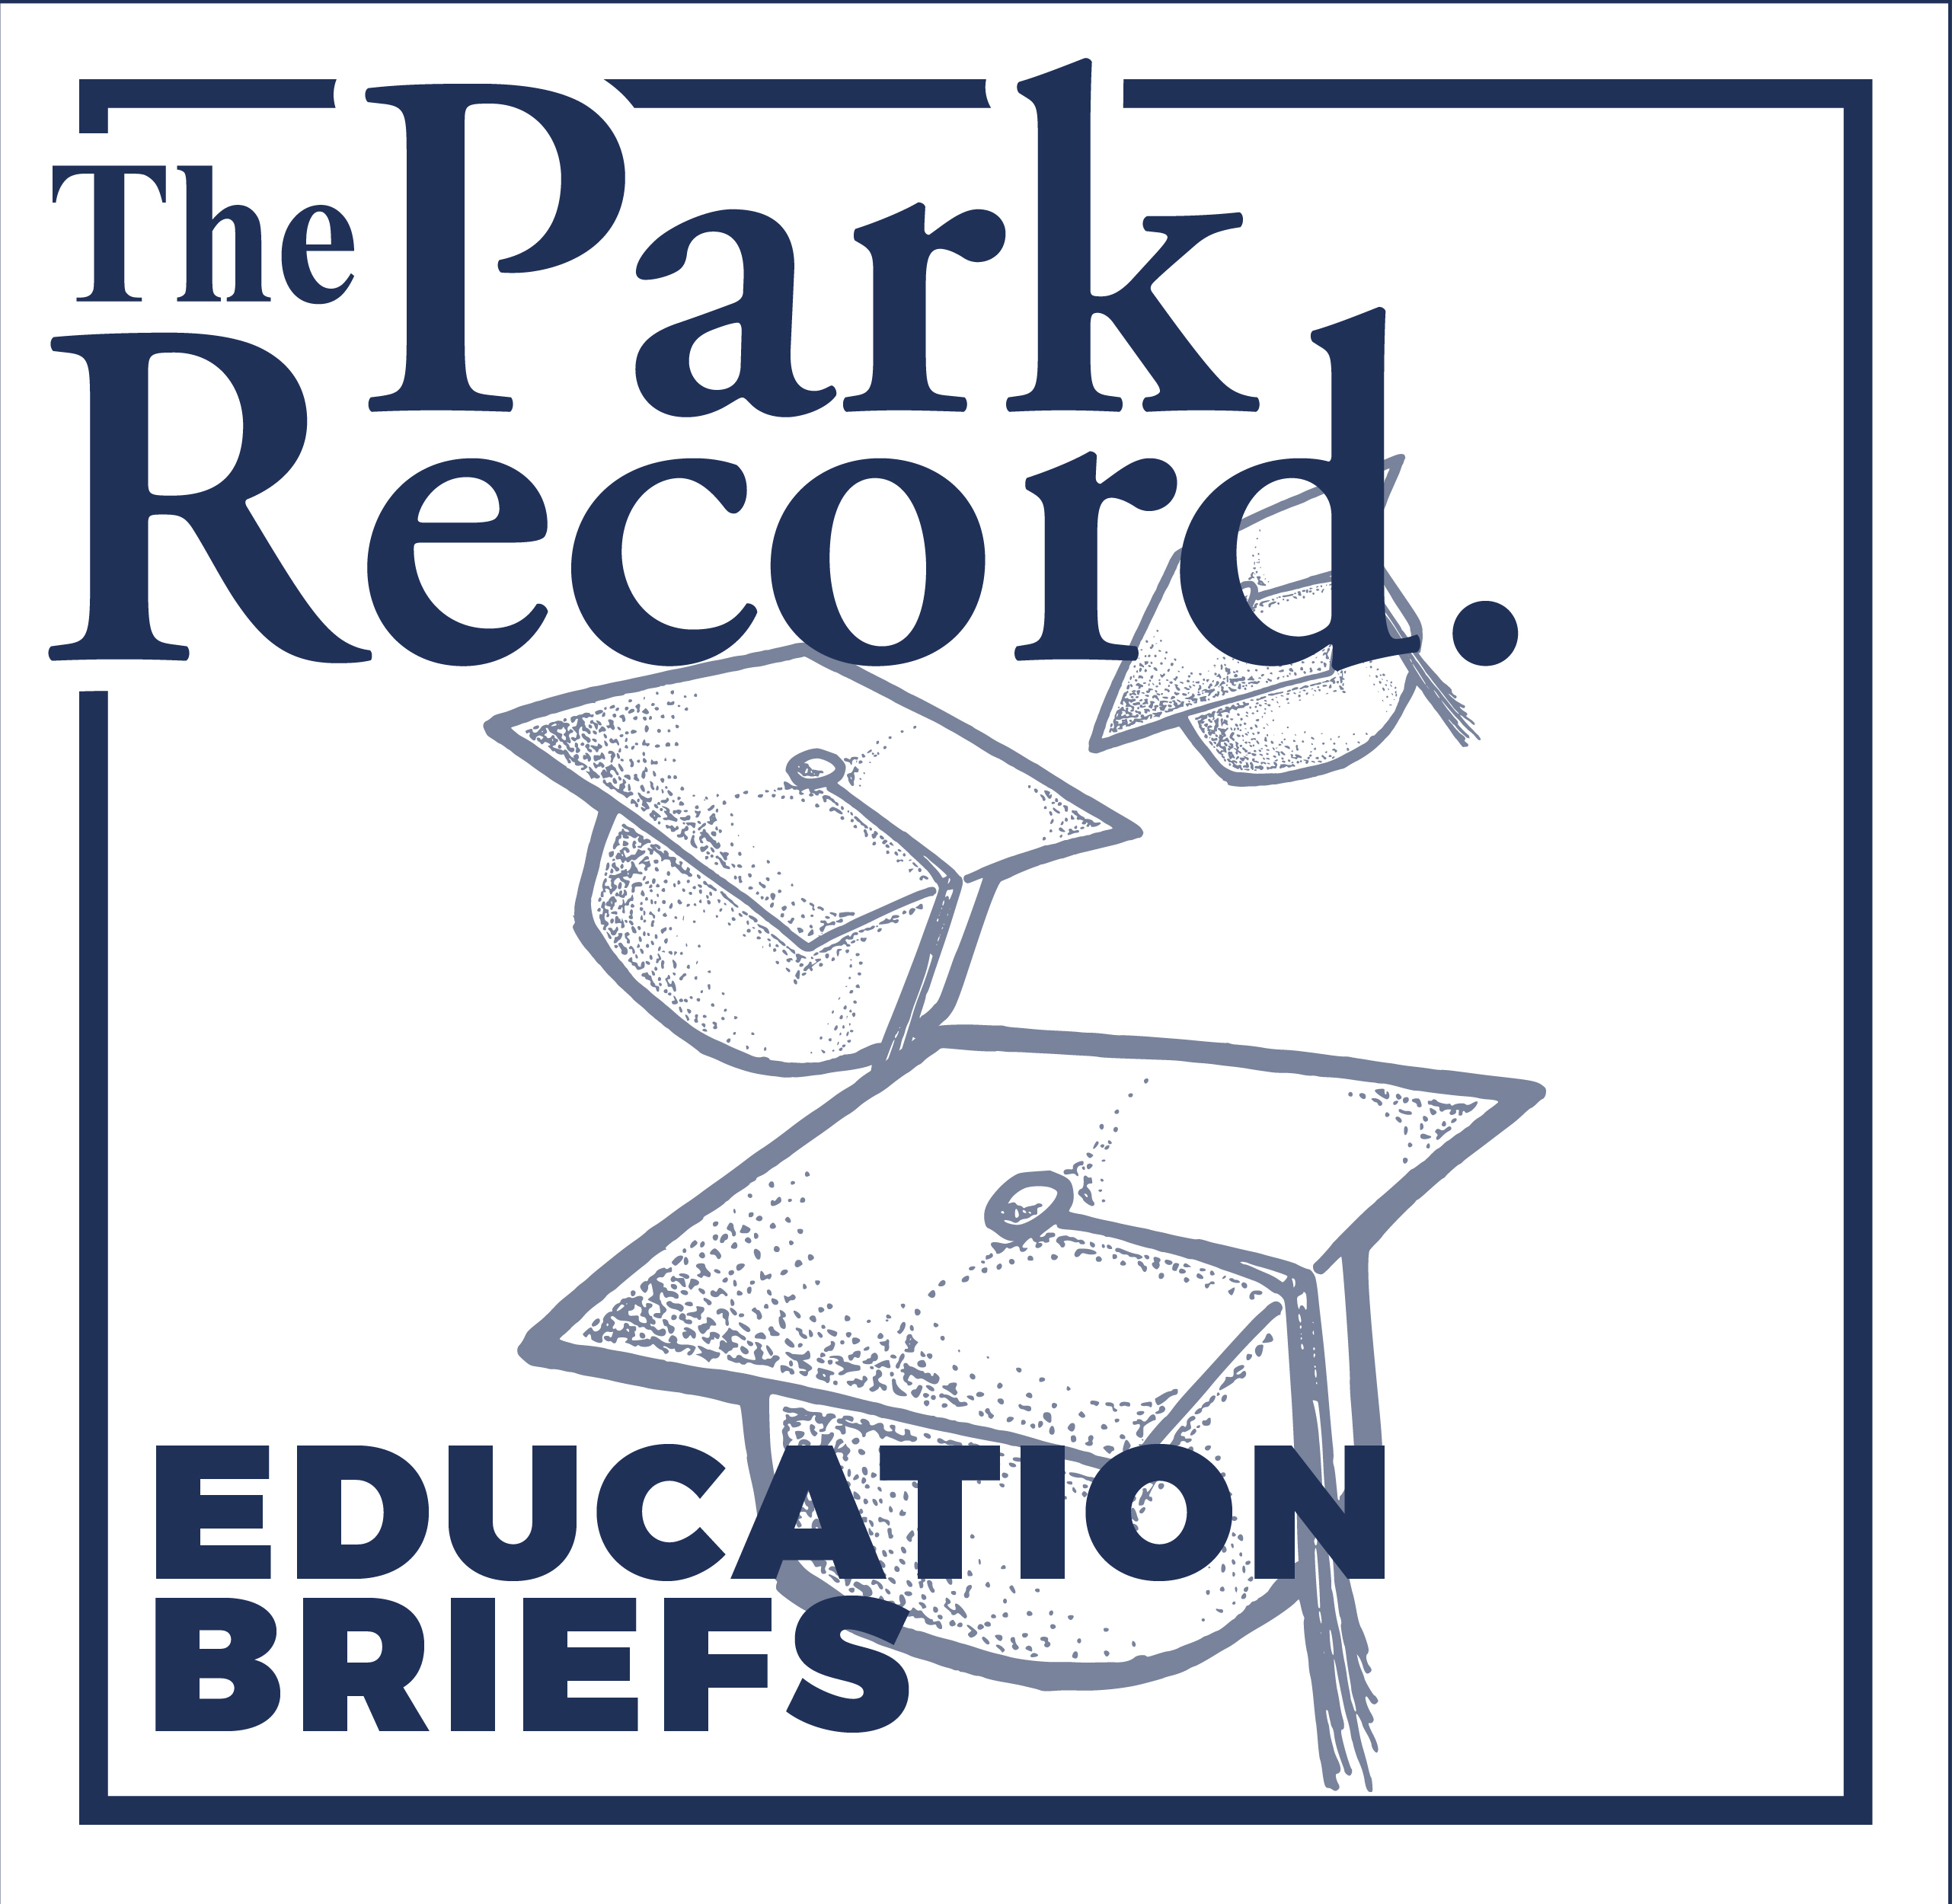 Education briefs: Dance program to host performances about iconic music